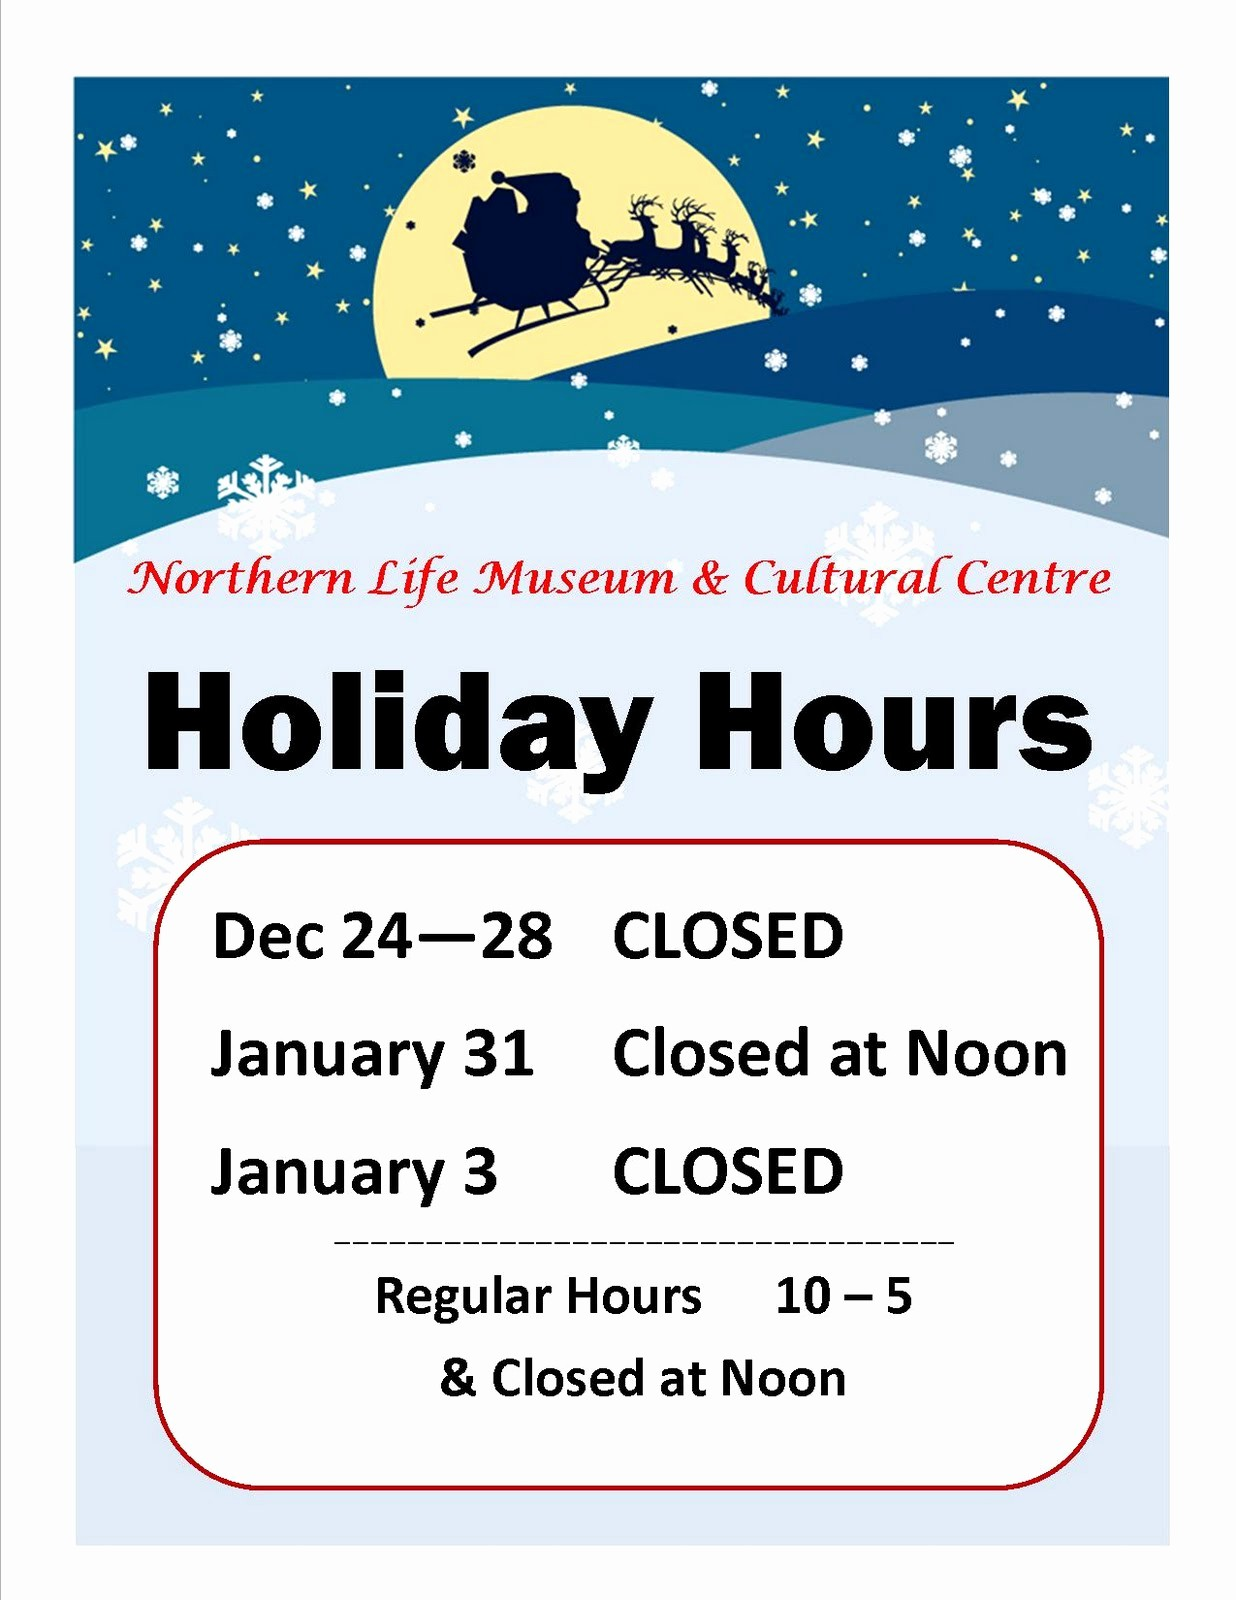 Office Closed for Holiday Sign Elegant northern Life Museum & Cultural Centre News Museum